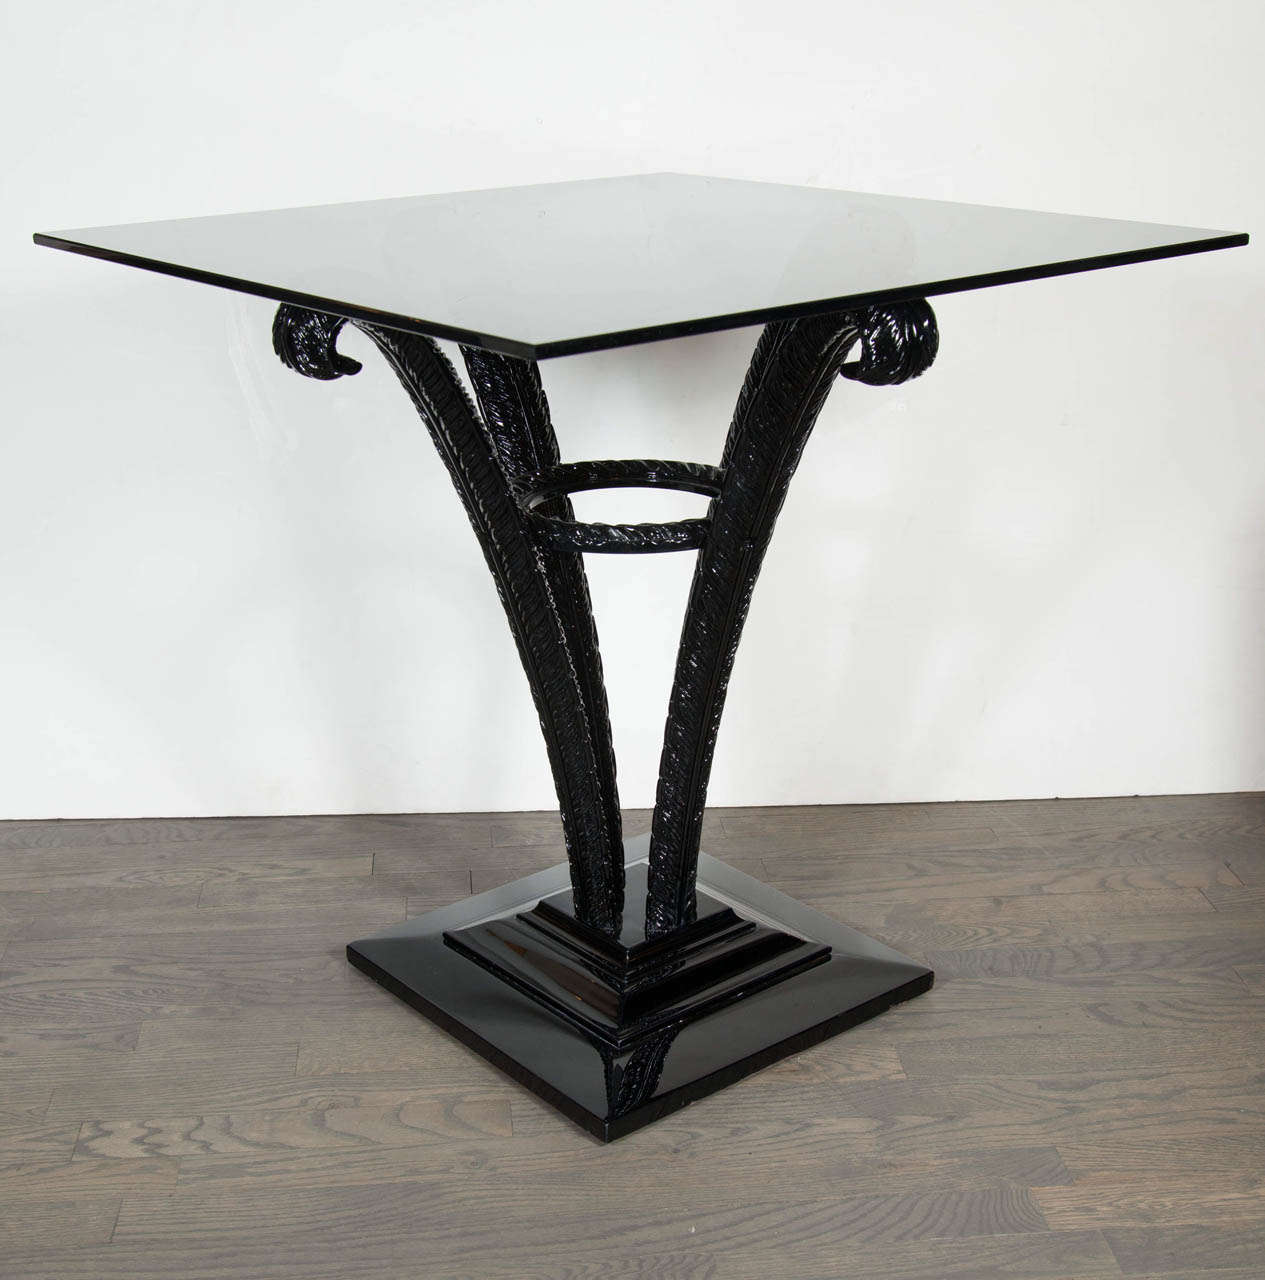 Elegant Art Deco Plume Table by Grosfeld House in Black Lacquer 2